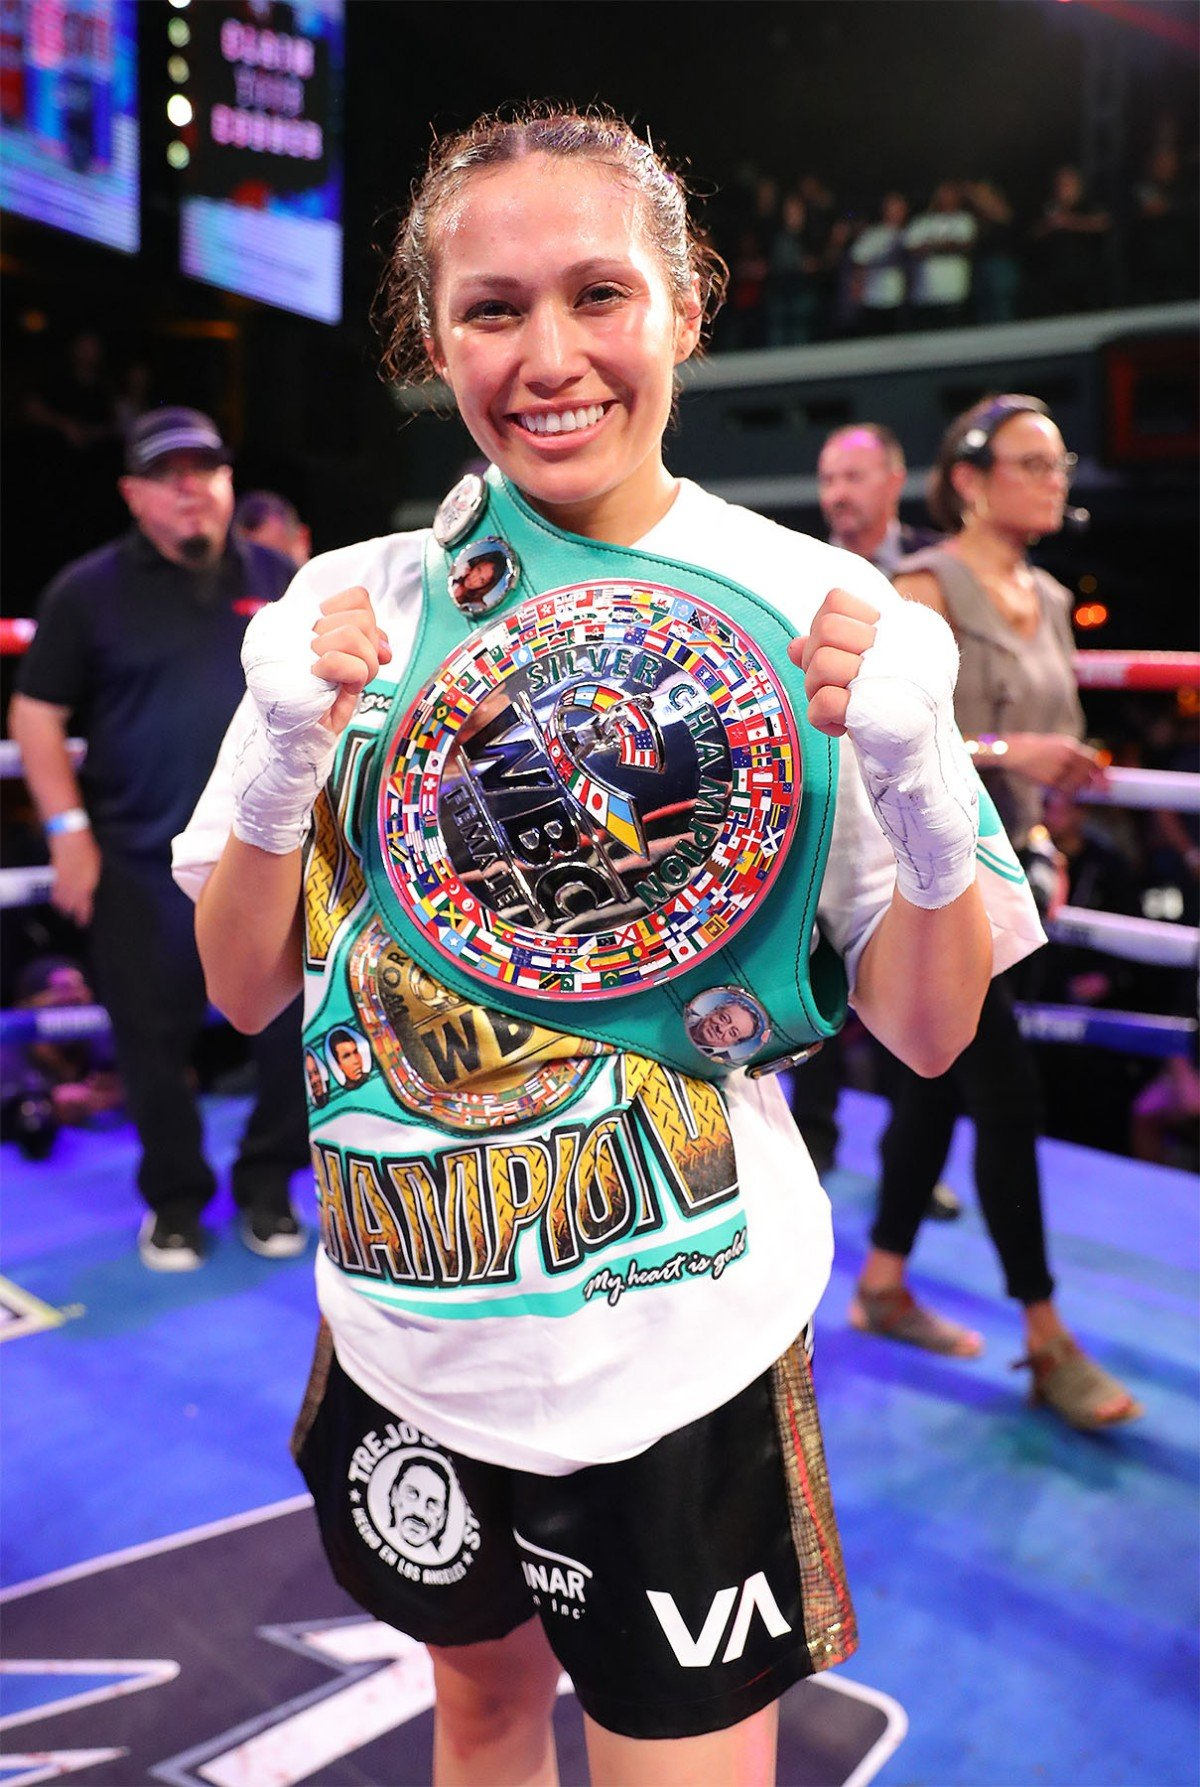 "Seniesa Estrada - Seniesa ""Superbad"" Estrada (17-0, 7 KOs) overcame her toughest challenge yet as she defeated Gretchen ""Chen Chen"" Abaniel (18-11, 6 KOs) via technical knockout to defend her WBC Silver Light Flyweight Championship in the scheduled 10-round main event of the June 13 edition of Golden Boy DAZN Thursday Night Fights at Avalon Hollywood. Abaniel was not able to continue after the fourth round, handing Estrada the victory."